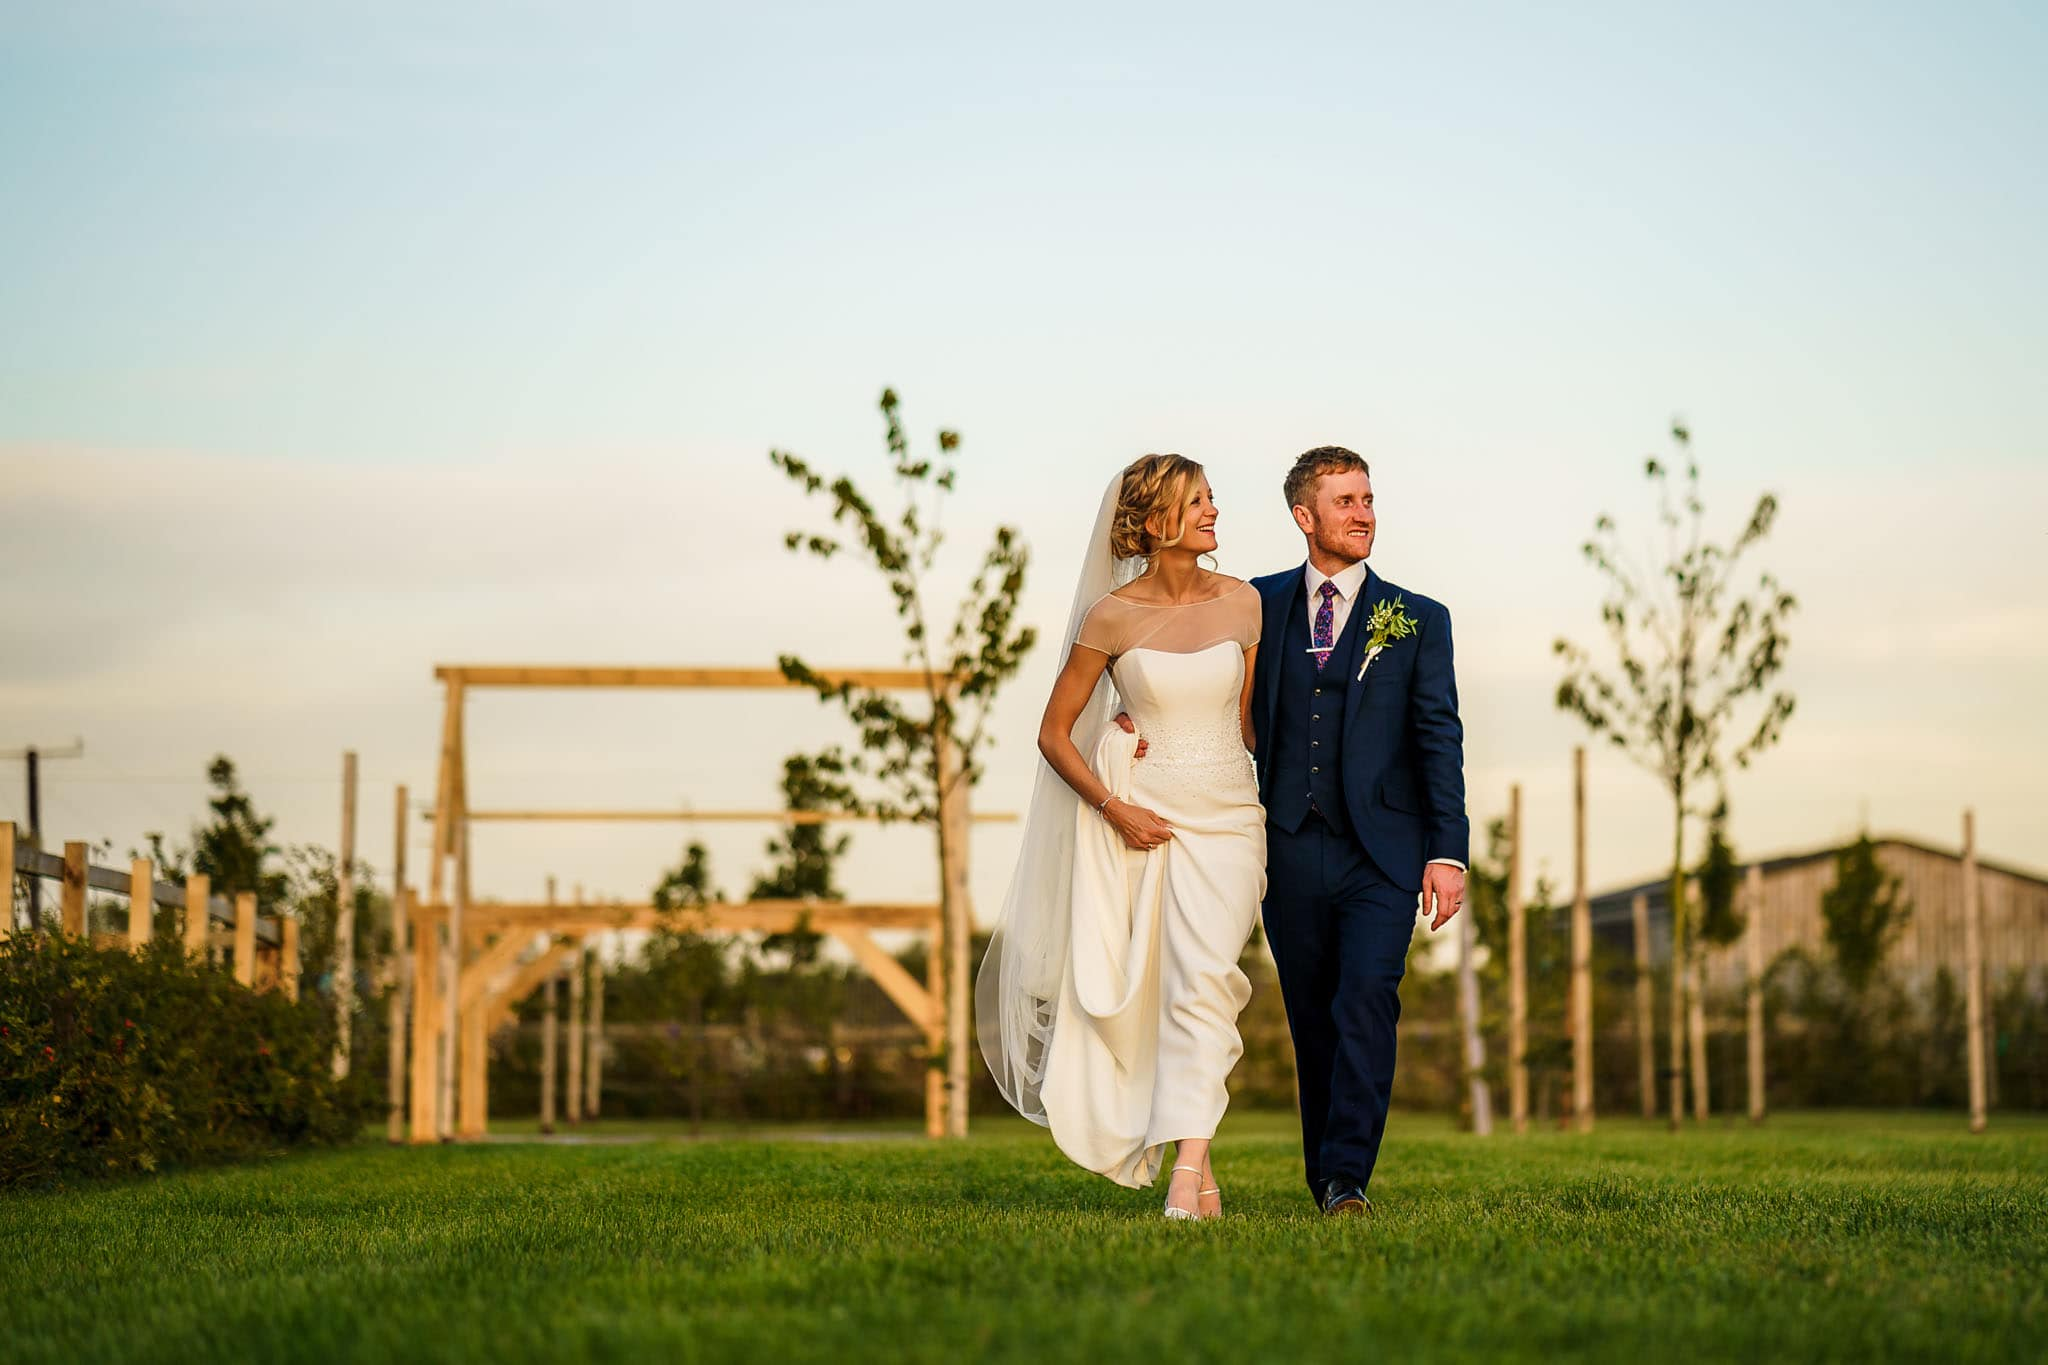 bride and groom walking together in the evening sunshine